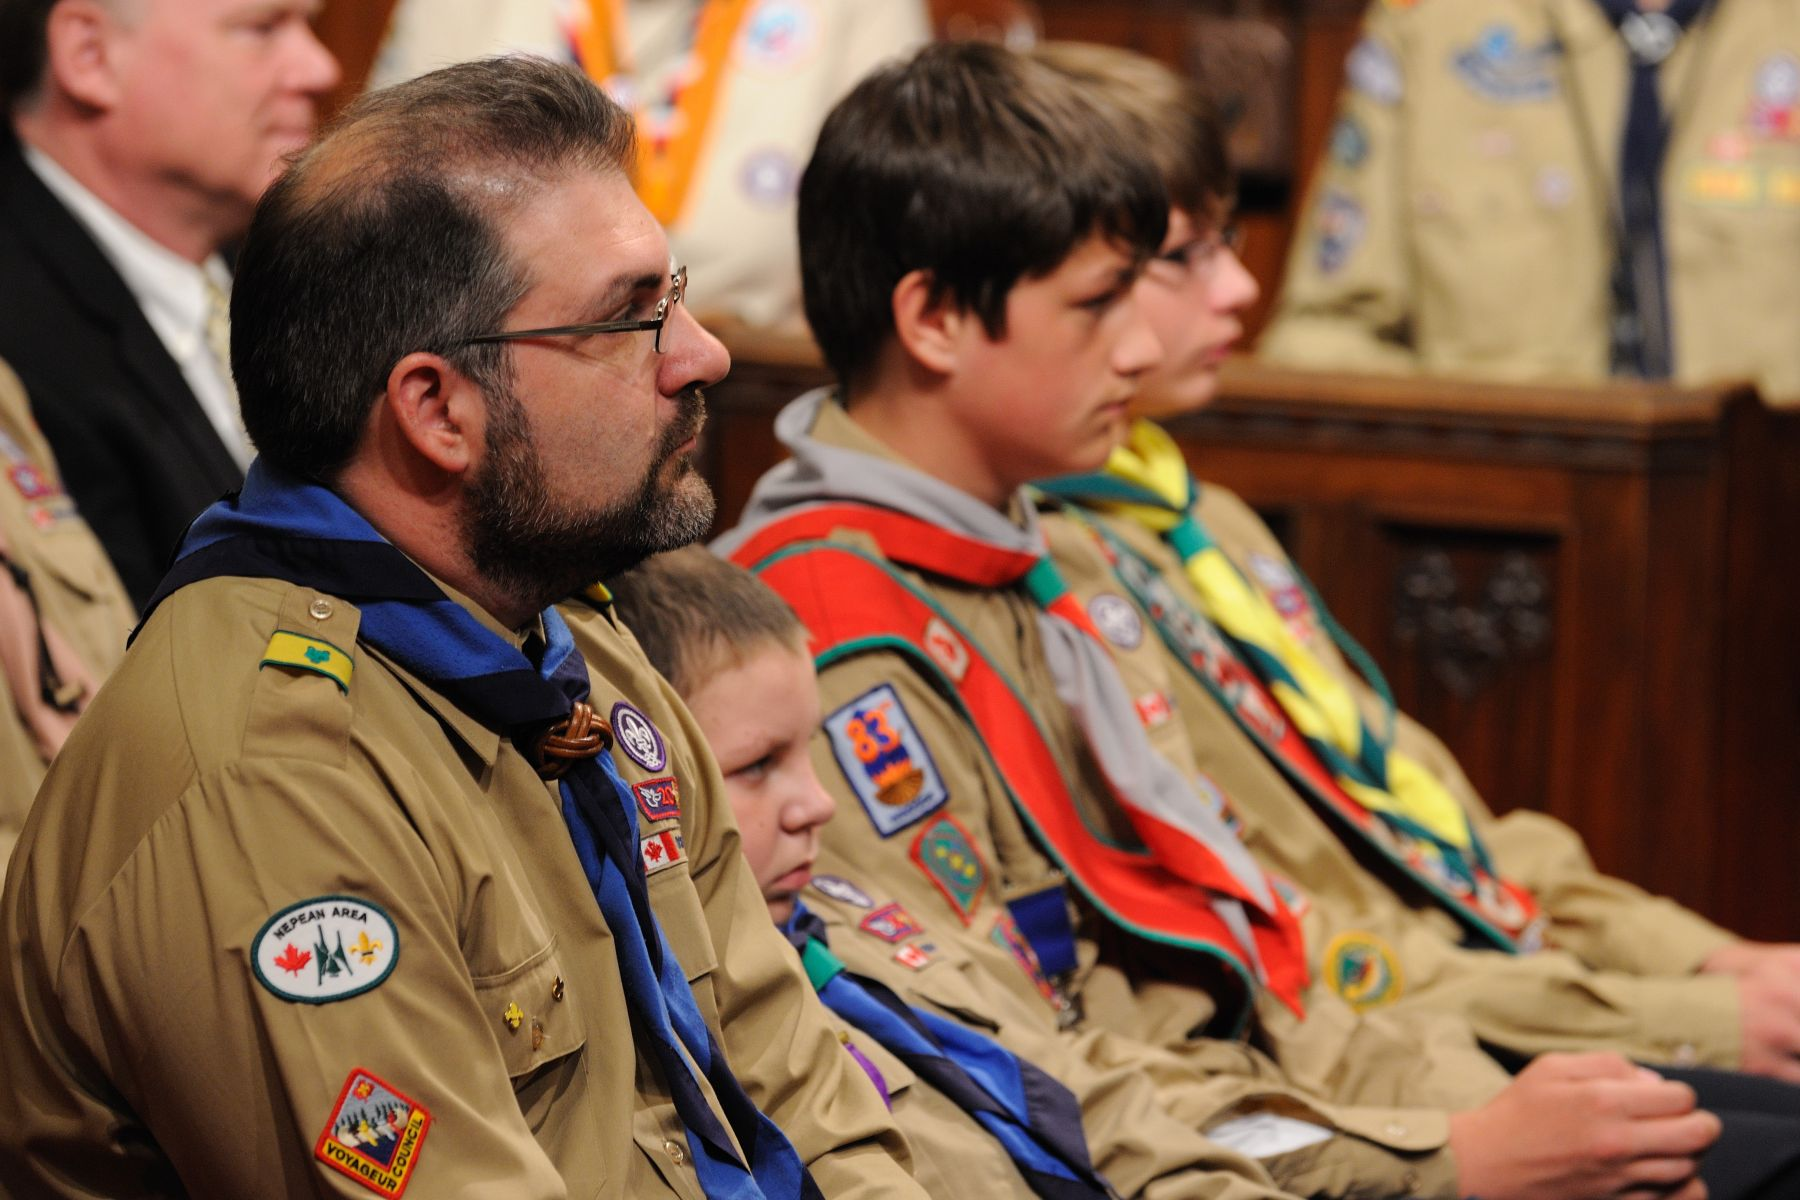 The Governor General attended the Scouts Canada National Awards Ceremony in his capacity as patron scout. Sixteen recipients of Scouts Canada's highest distinctions were celebrated.